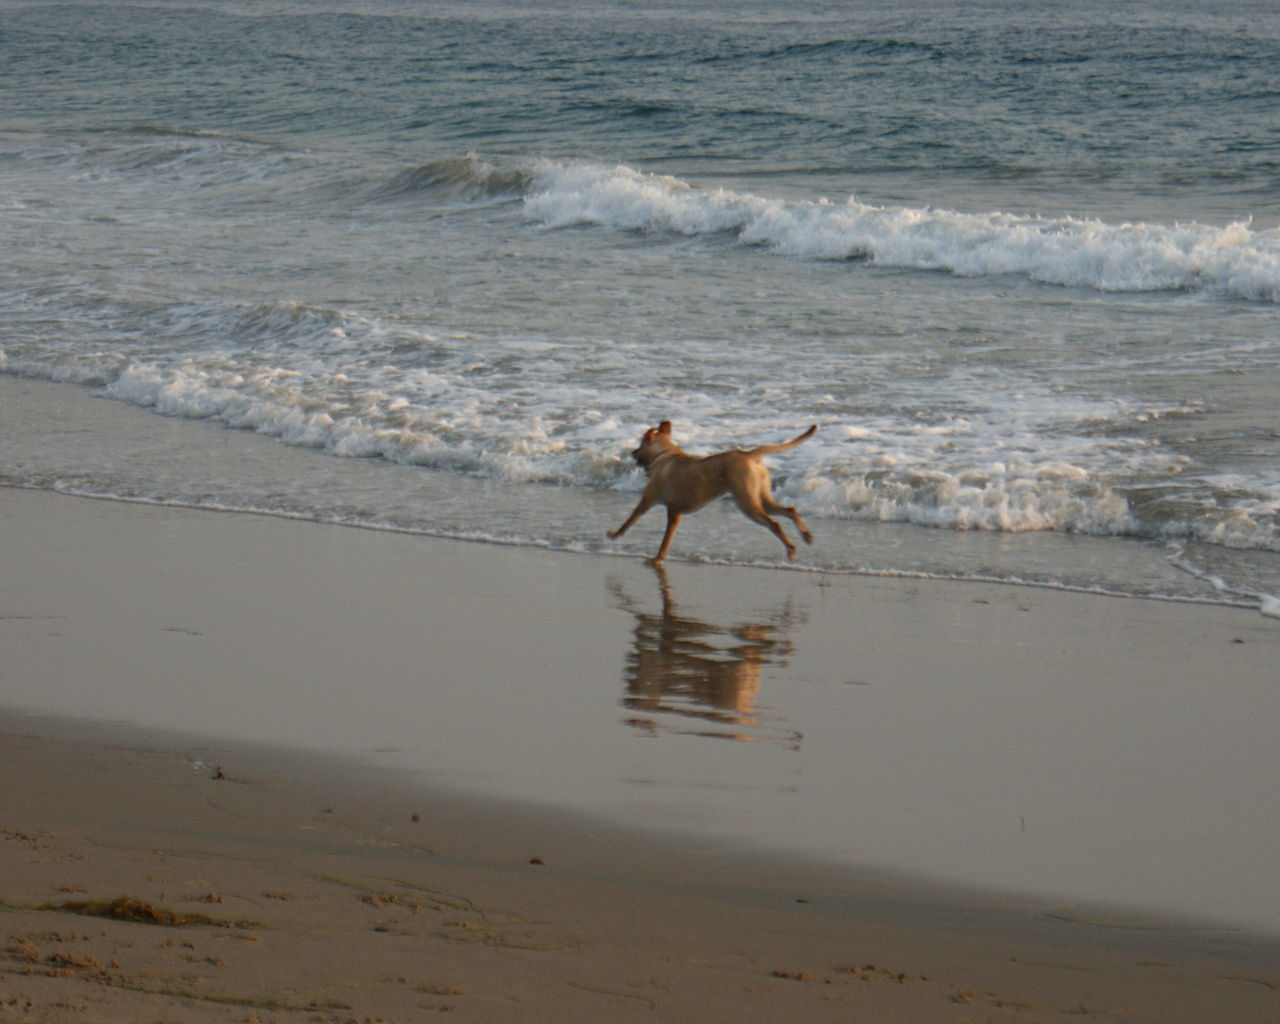 A happy dog runs on the beach in coastal Santa Barbara. Beach Coastline Dog Dog On Beach Ocean Outdoors Reflection Reflection Reflections In The Water Running Dog Sand Sea Shore Surf Water Waters Edge Wave